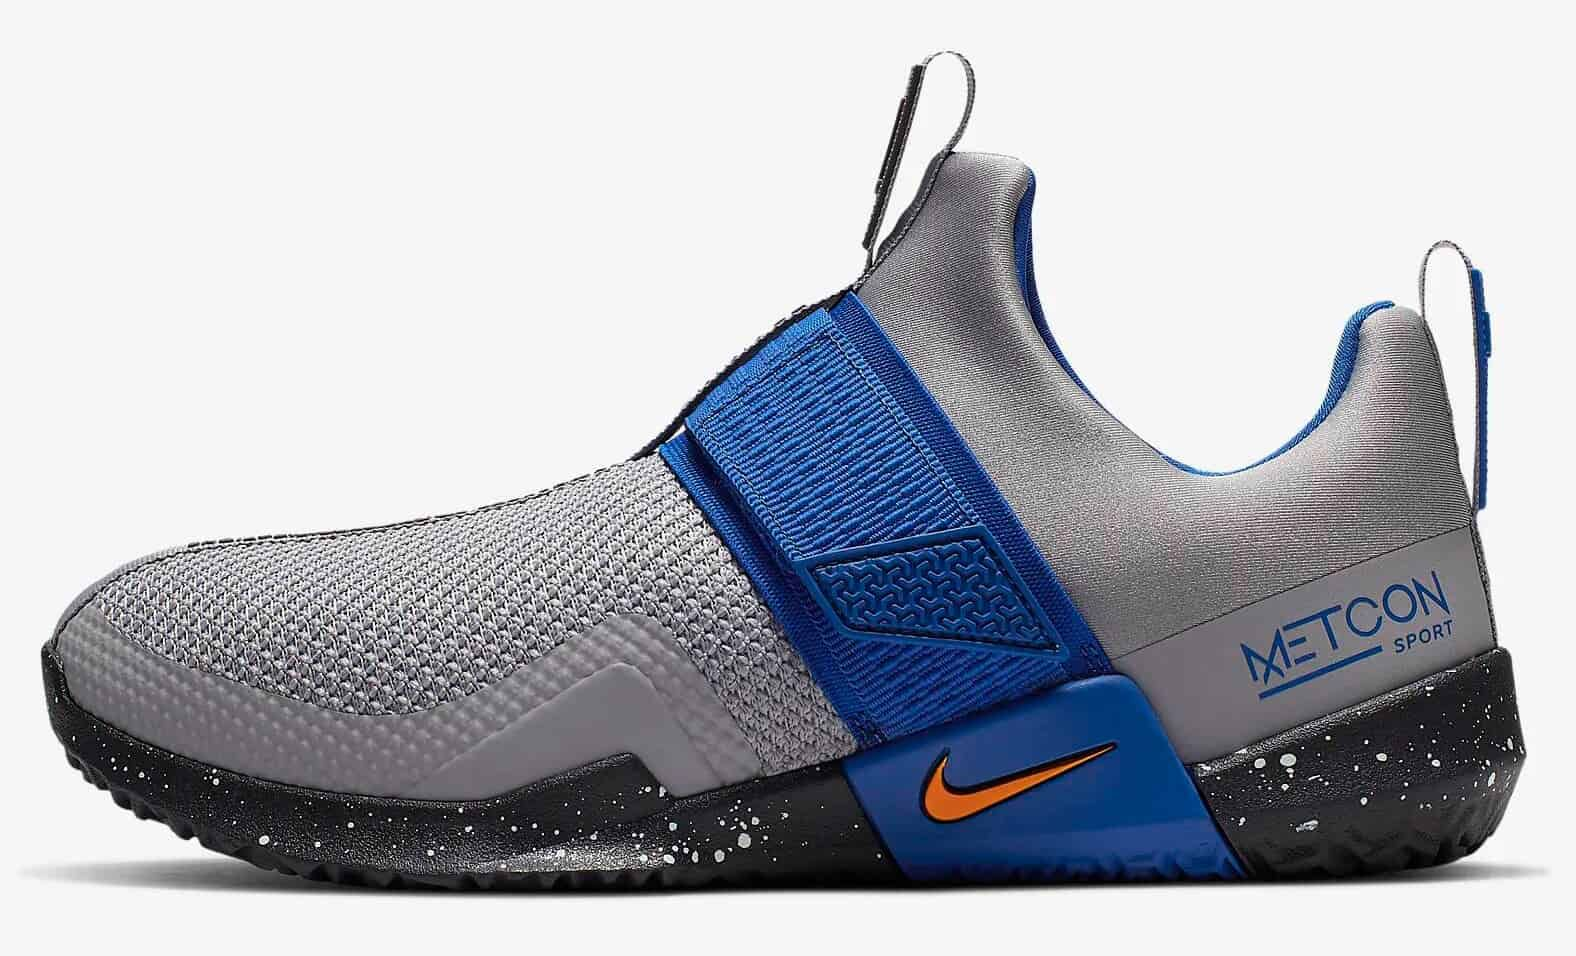 Nike Metcon Sport (NEW FOR 2019!) Nike metcon, Crossfit